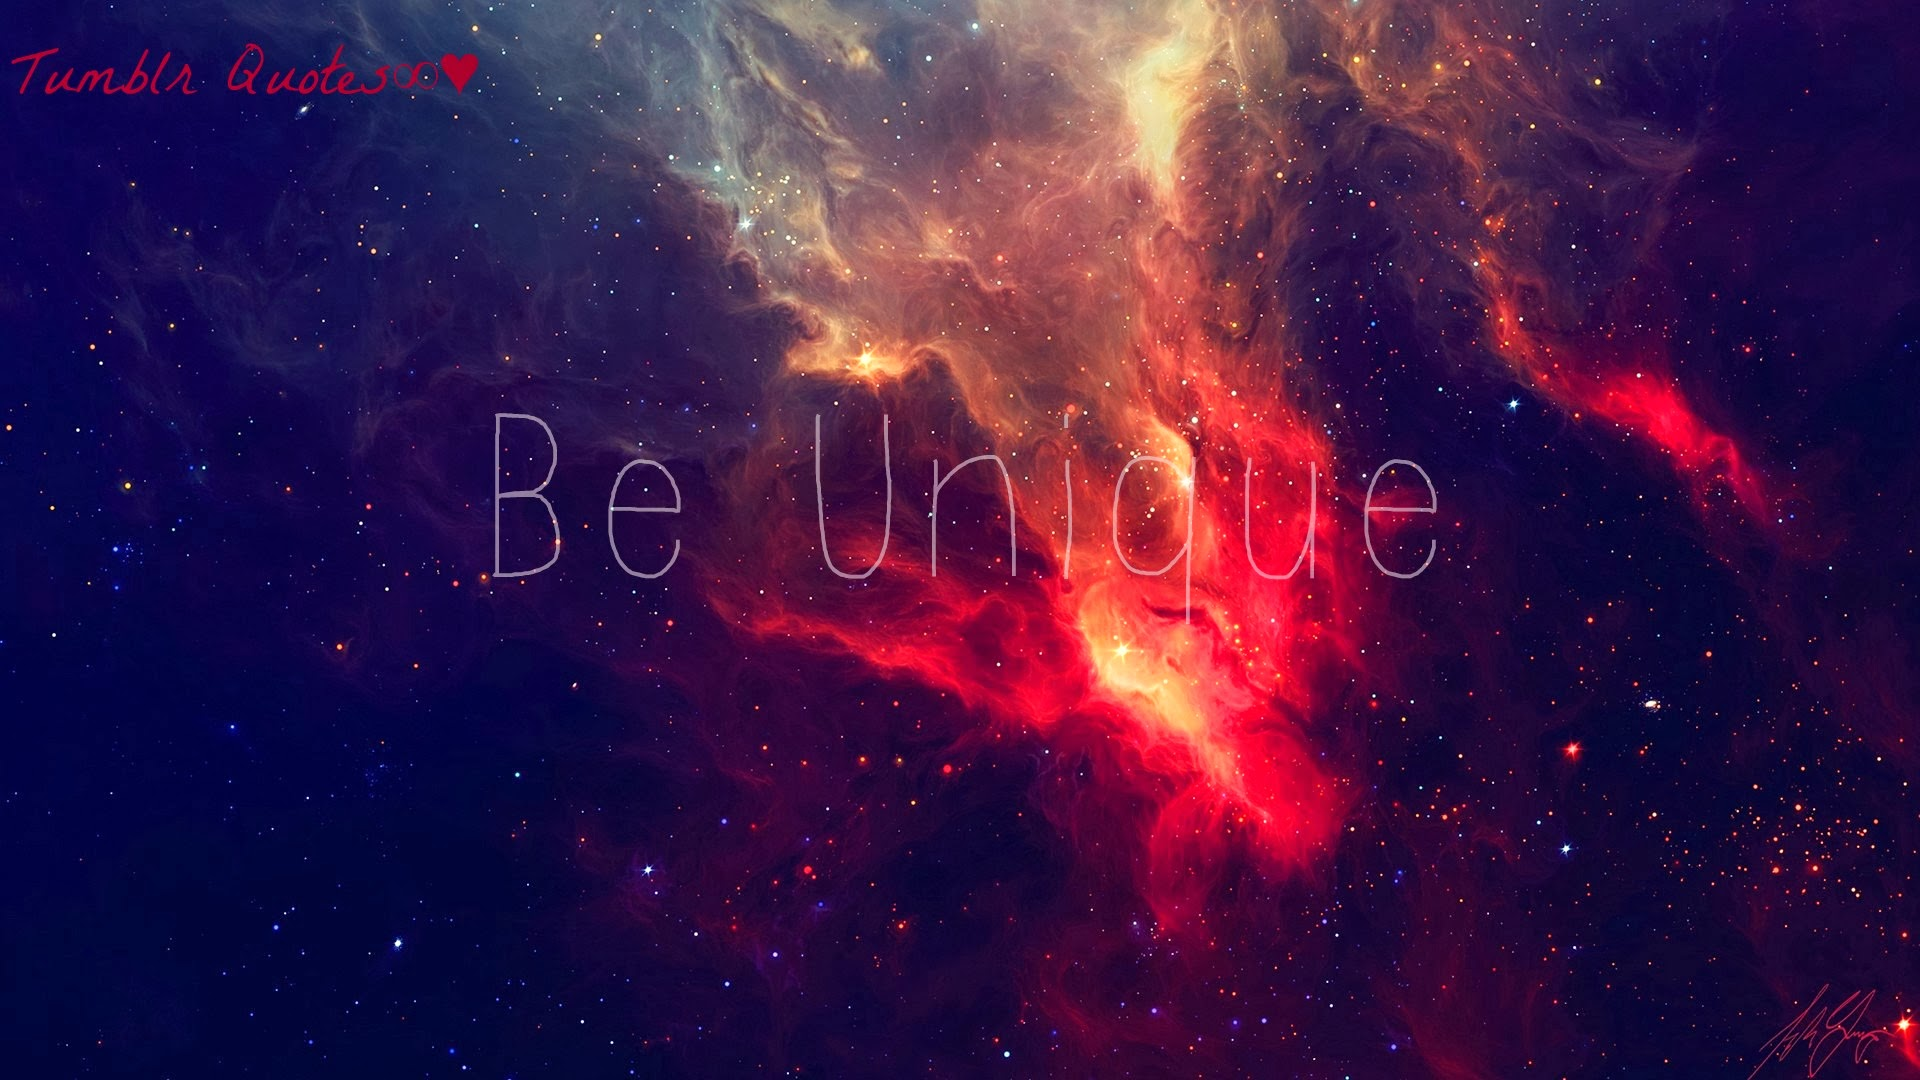 Galaxy Wallpaper Tumblr Quotes Tumblr quotes   community 1920x1080